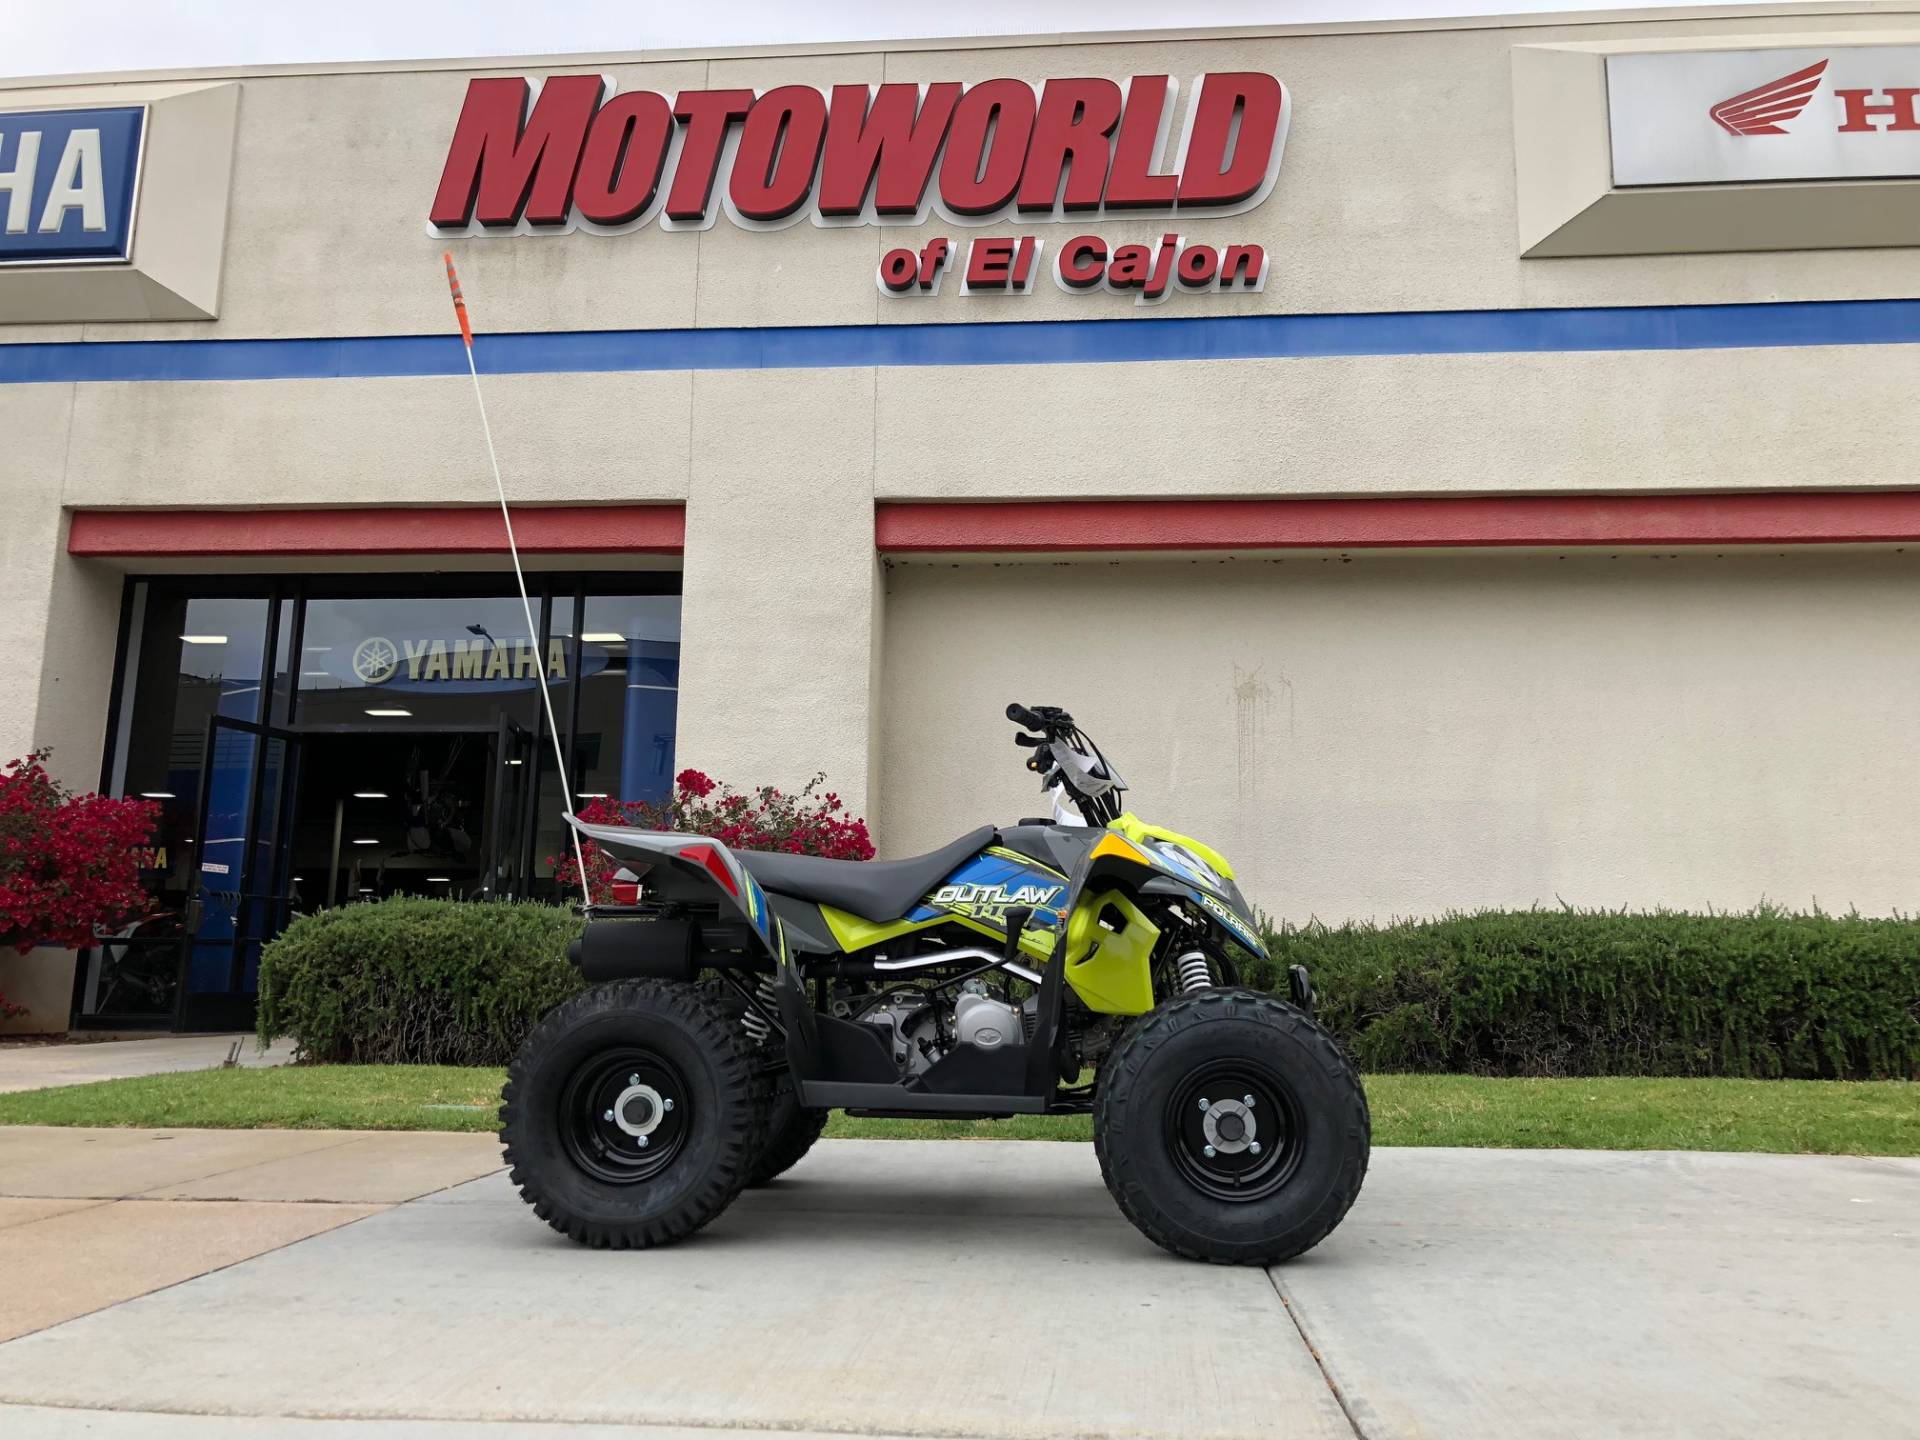 2018 Polaris Outlaw 110 for sale 157460